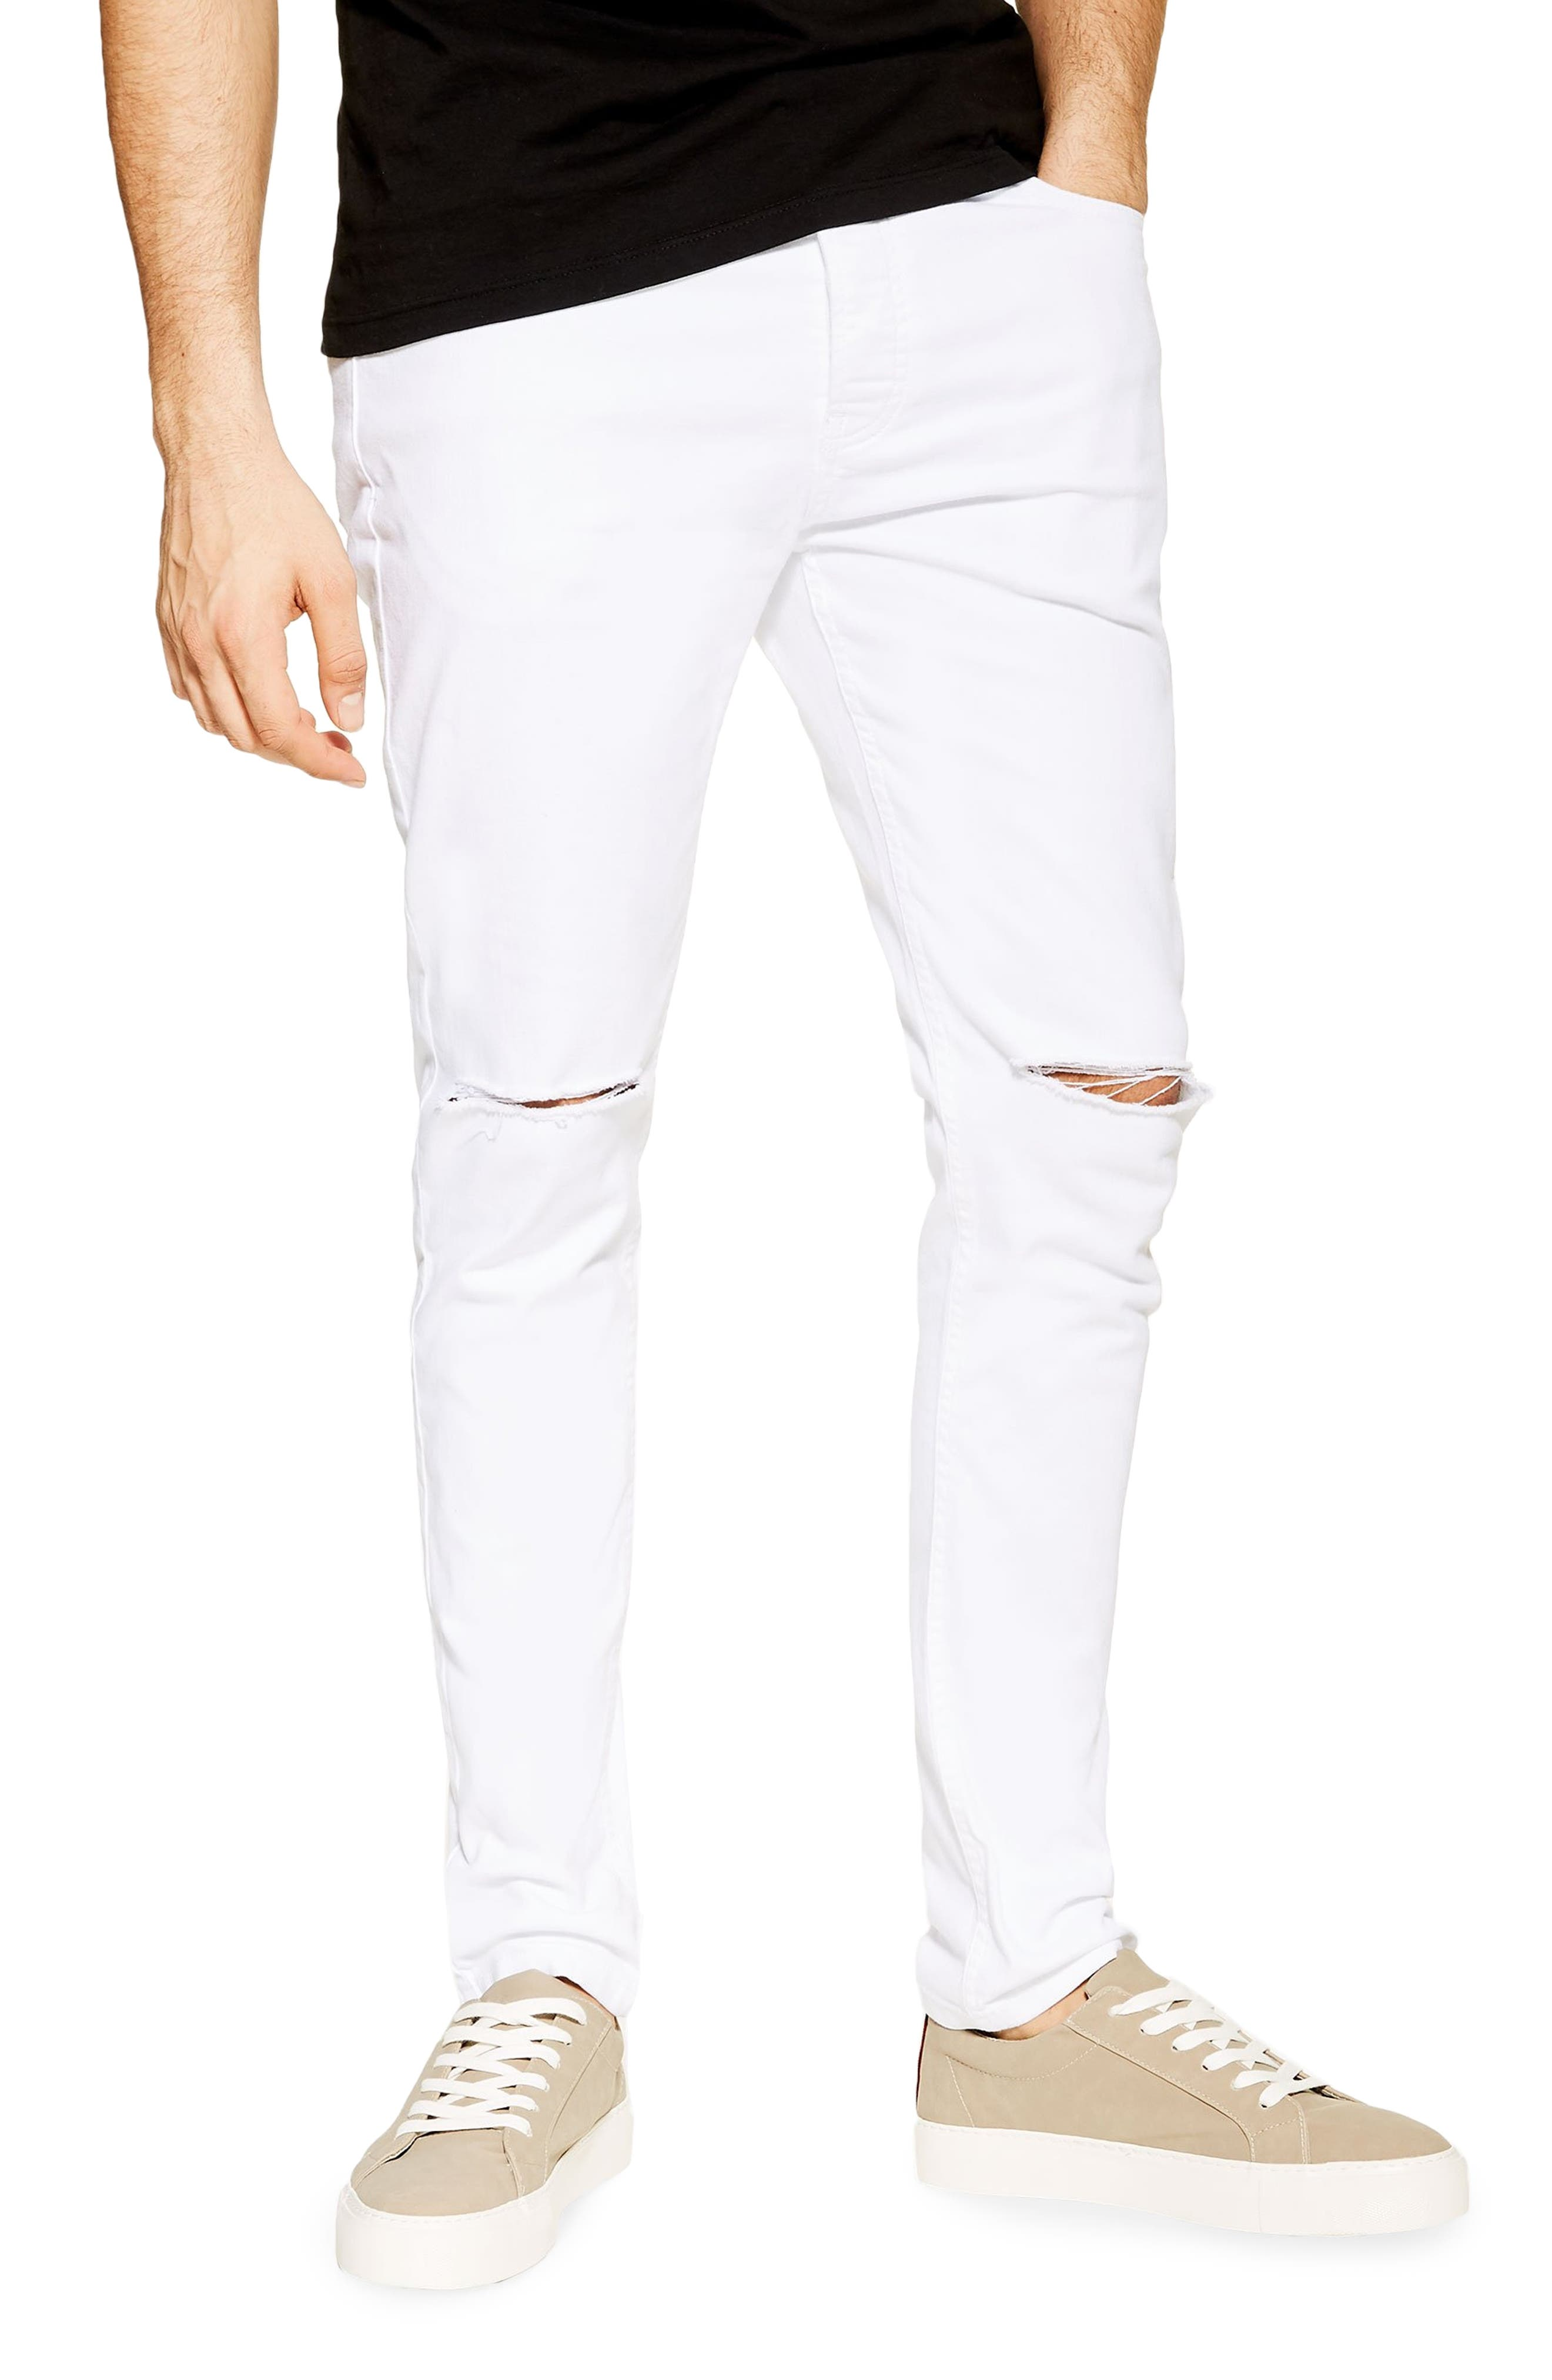 TOPMAN, Ripped Stretch Skinny Fit Jeans, Main thumbnail 1, color, WHITE